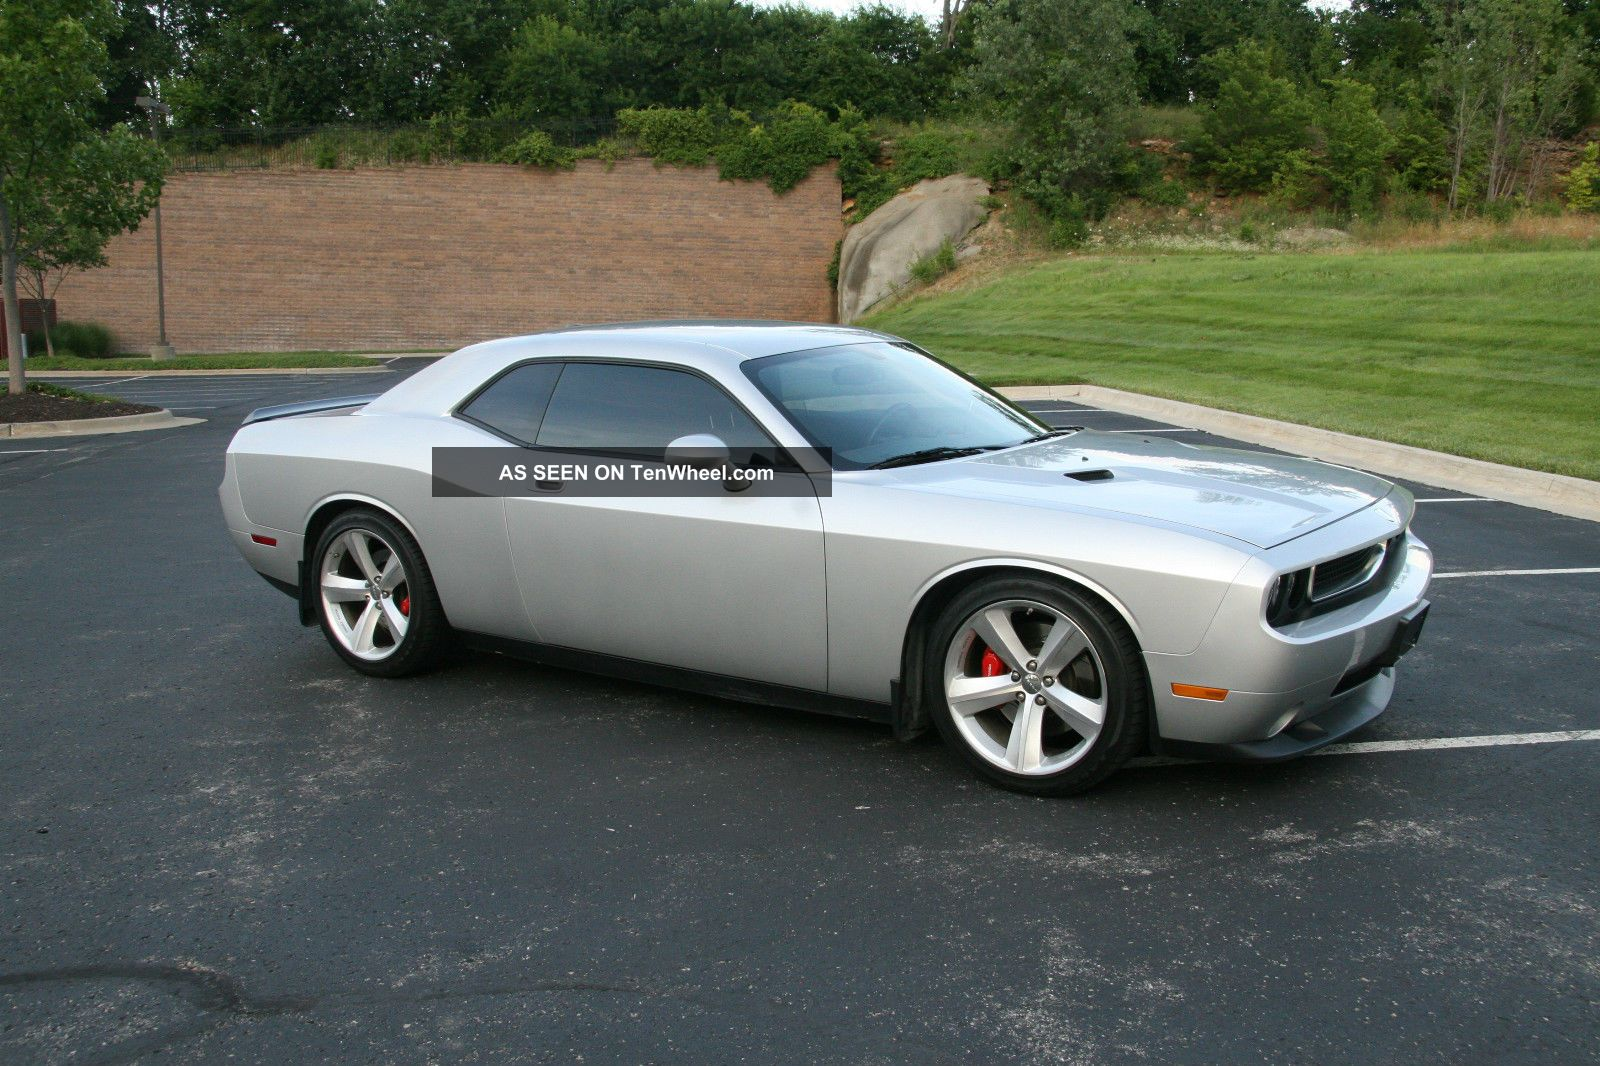 2010 Dodge Challenger Srt8 Procharger Supercharger Hemi 525hp Supercharged Challenger photo